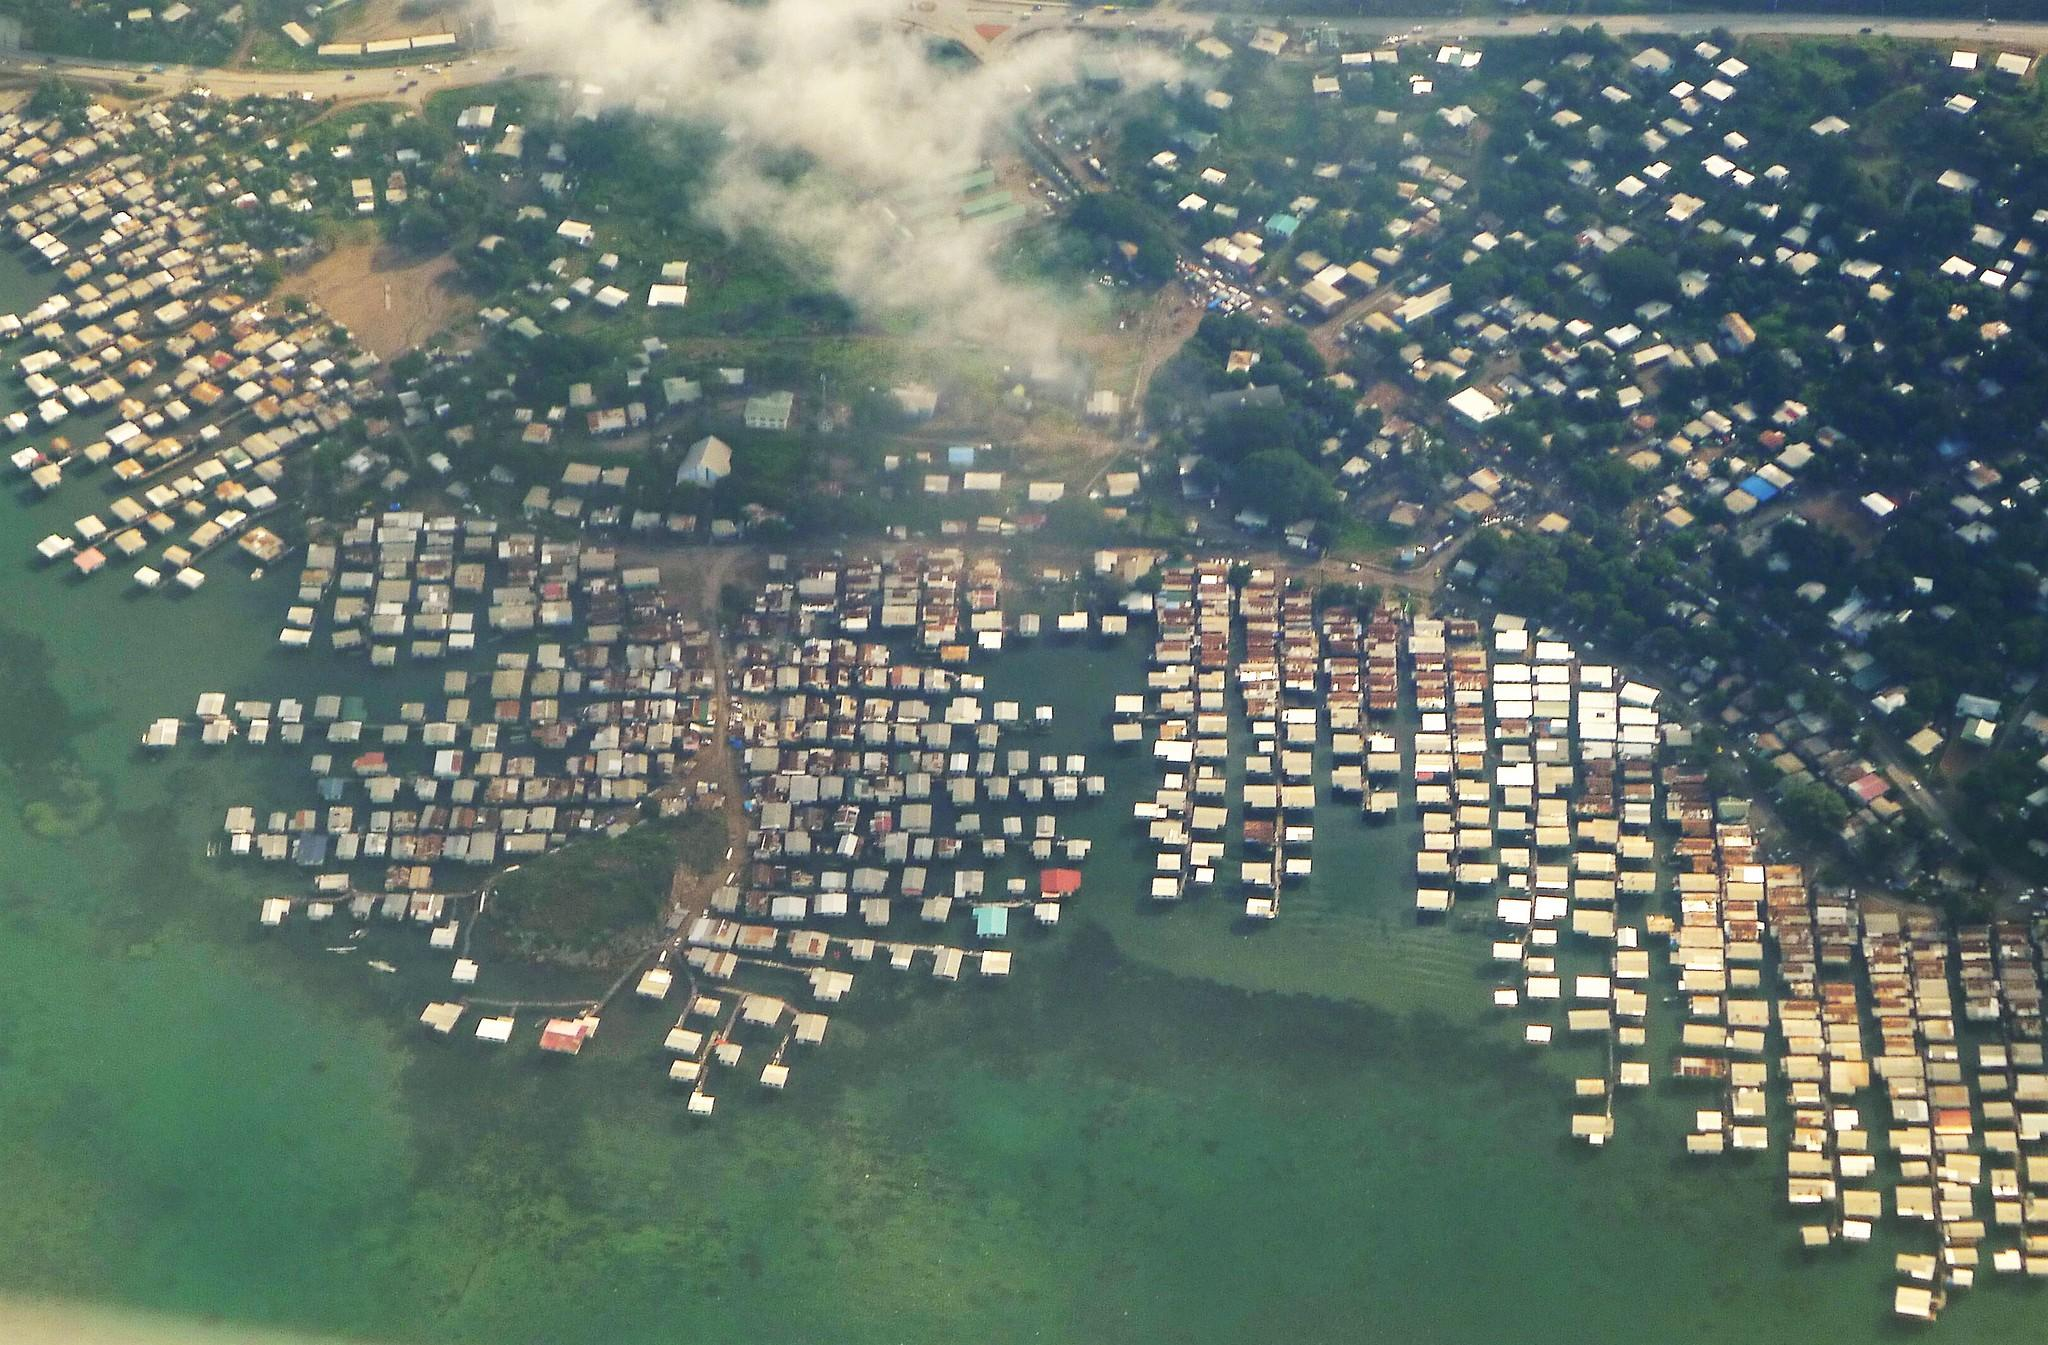 port moresby papua new guinea stilted villages aerial